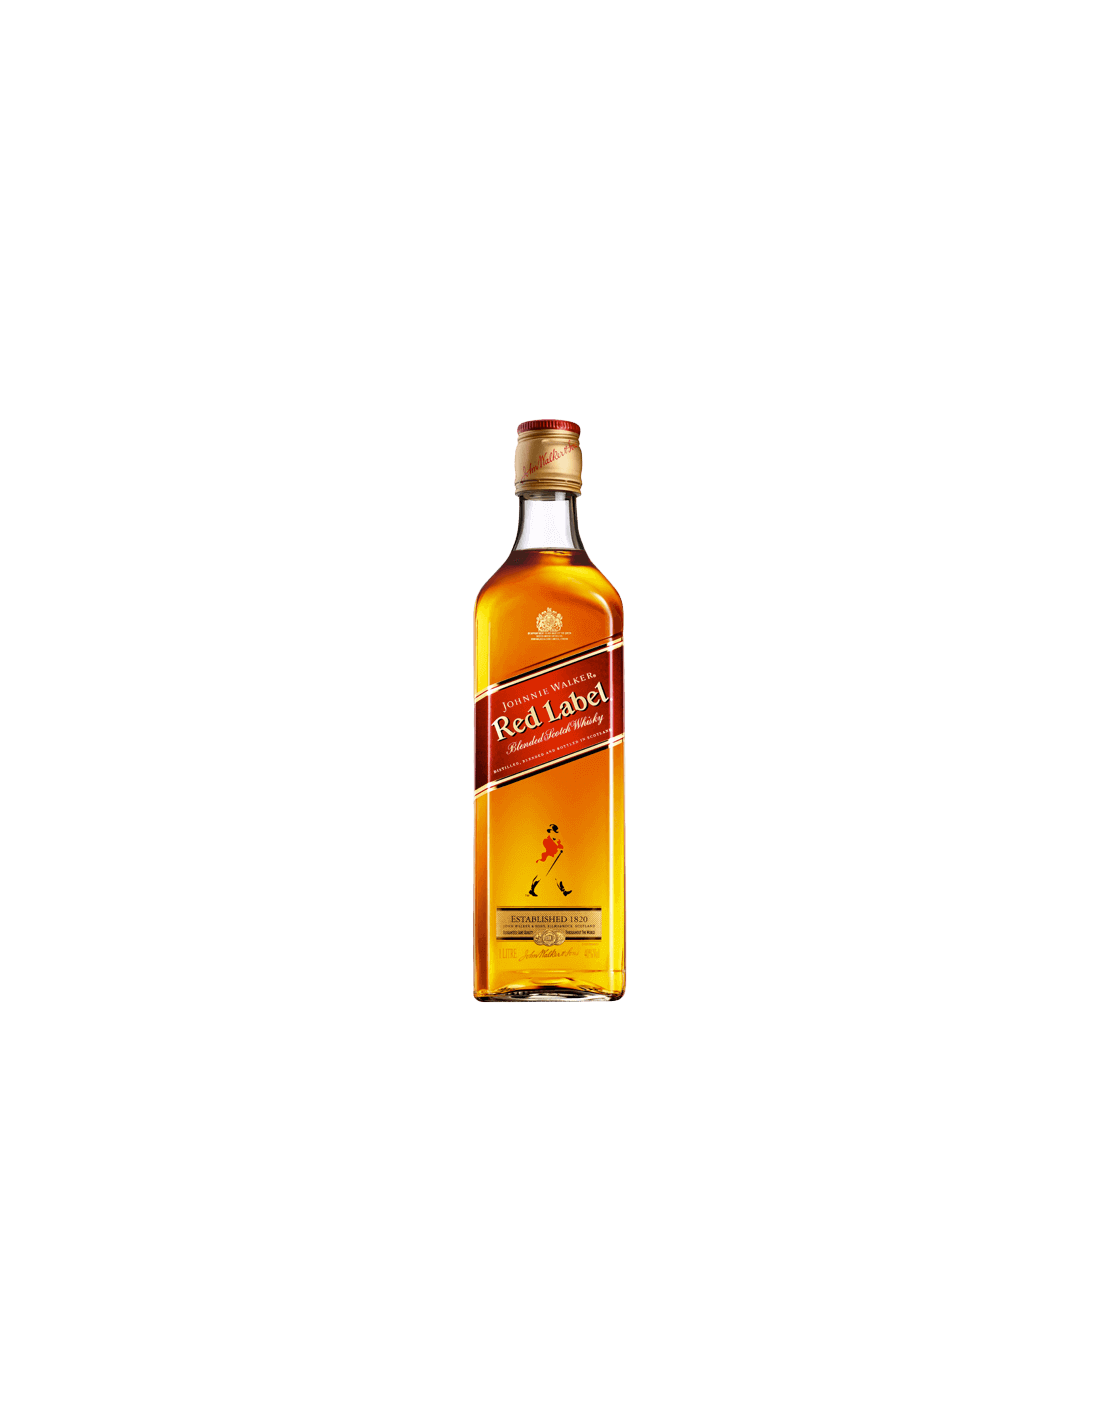 Whisky Johnnie Walker Red Label, 40% alc., 1L, Scotia